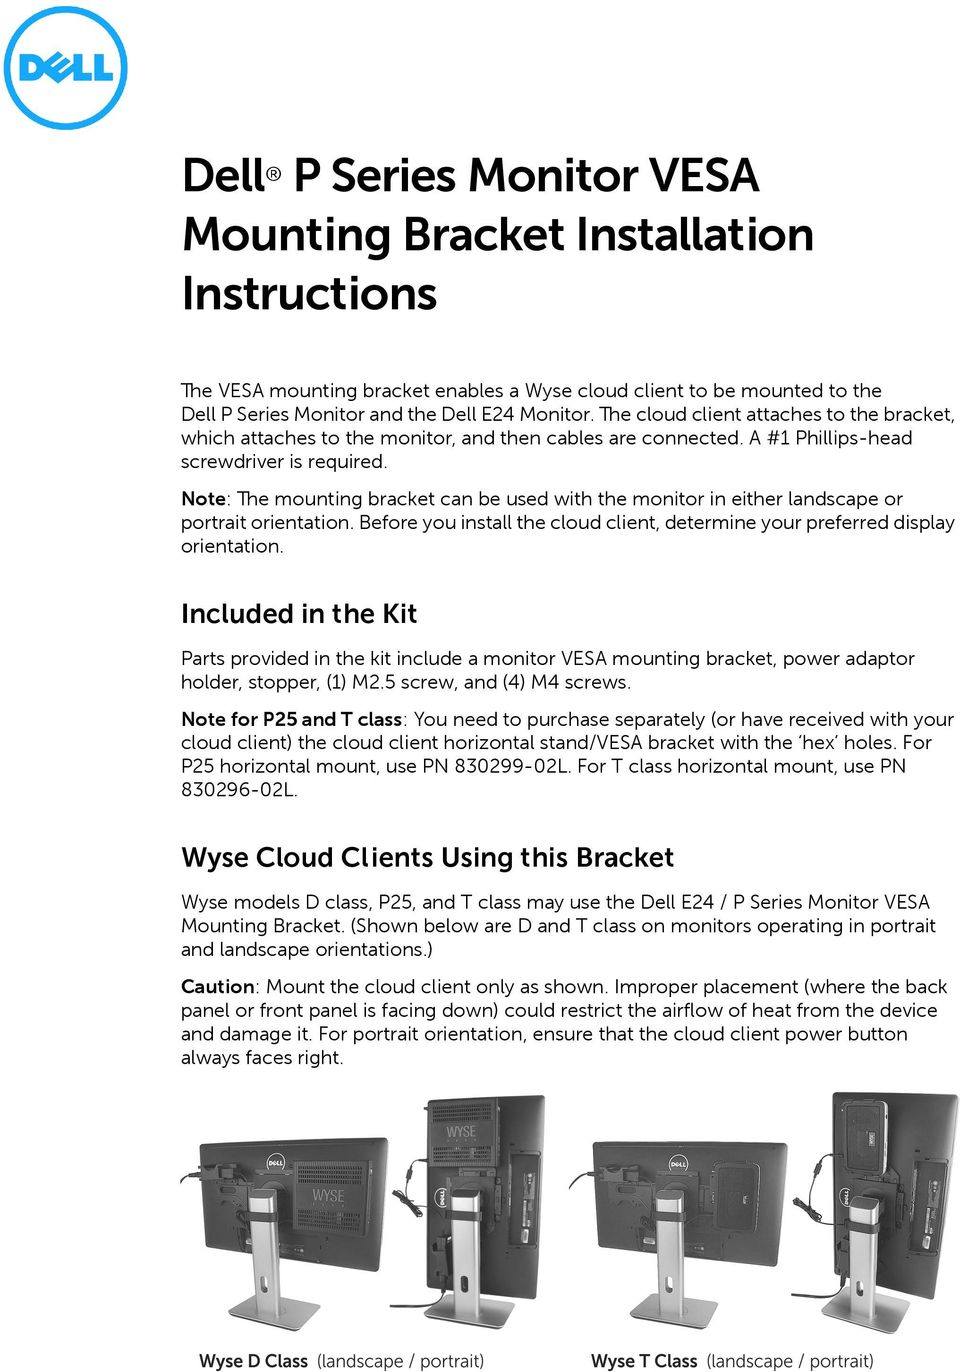 Note: The mounting bracket can be used with the monitor in either landscape or portrait orientation. Before you install the cloud client, determine your preferred display orientation.